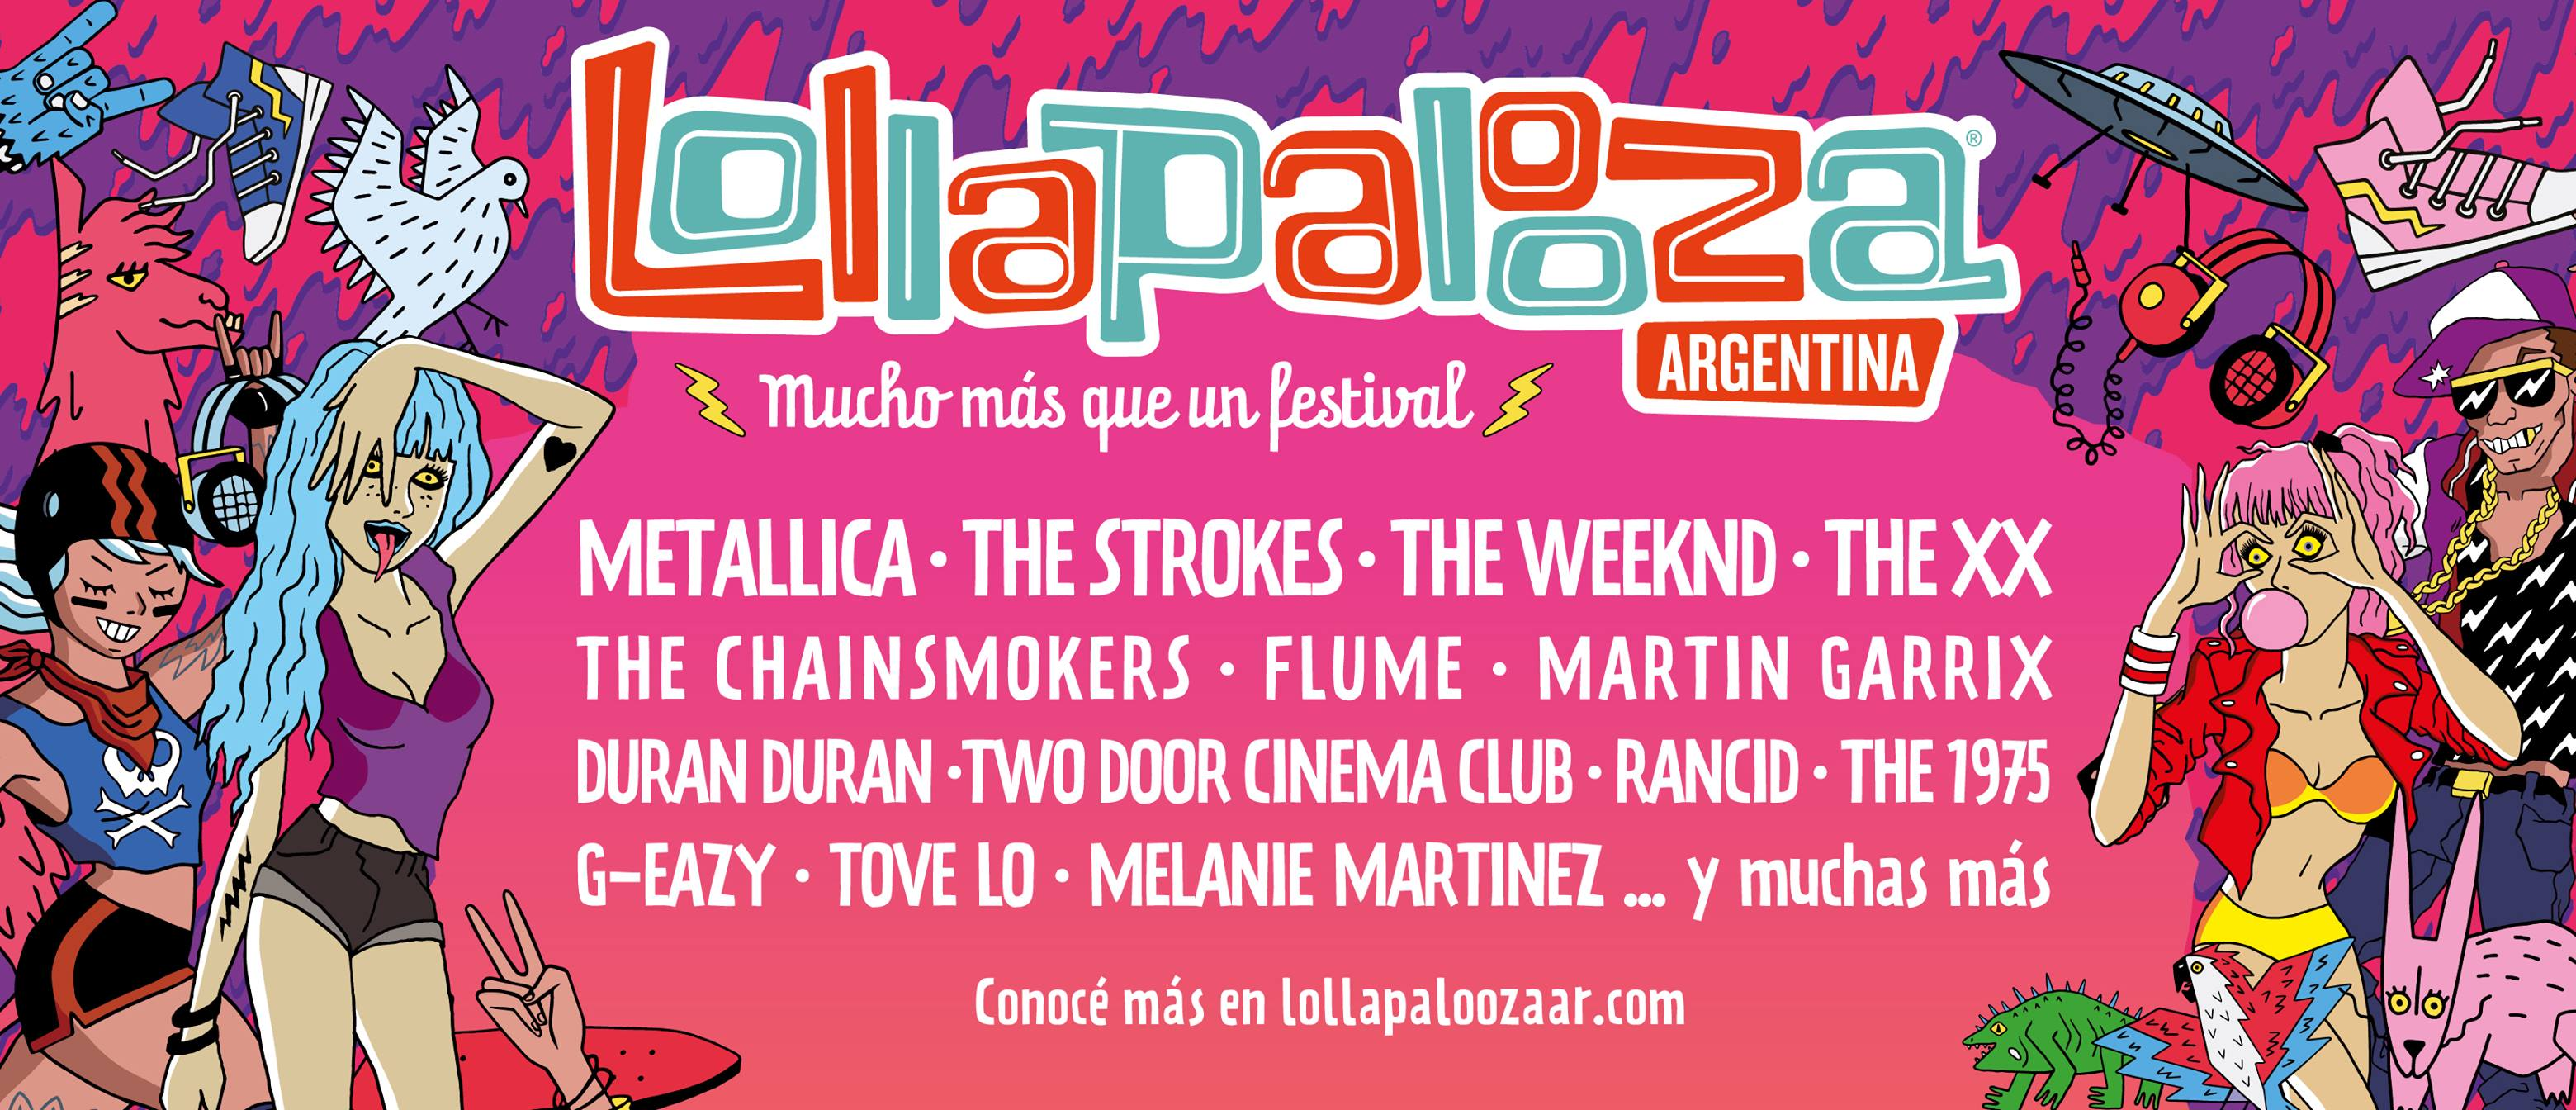 image for event Lollapalooza Argentina in Buenos Aires, Argentina on Mar 31, 2017